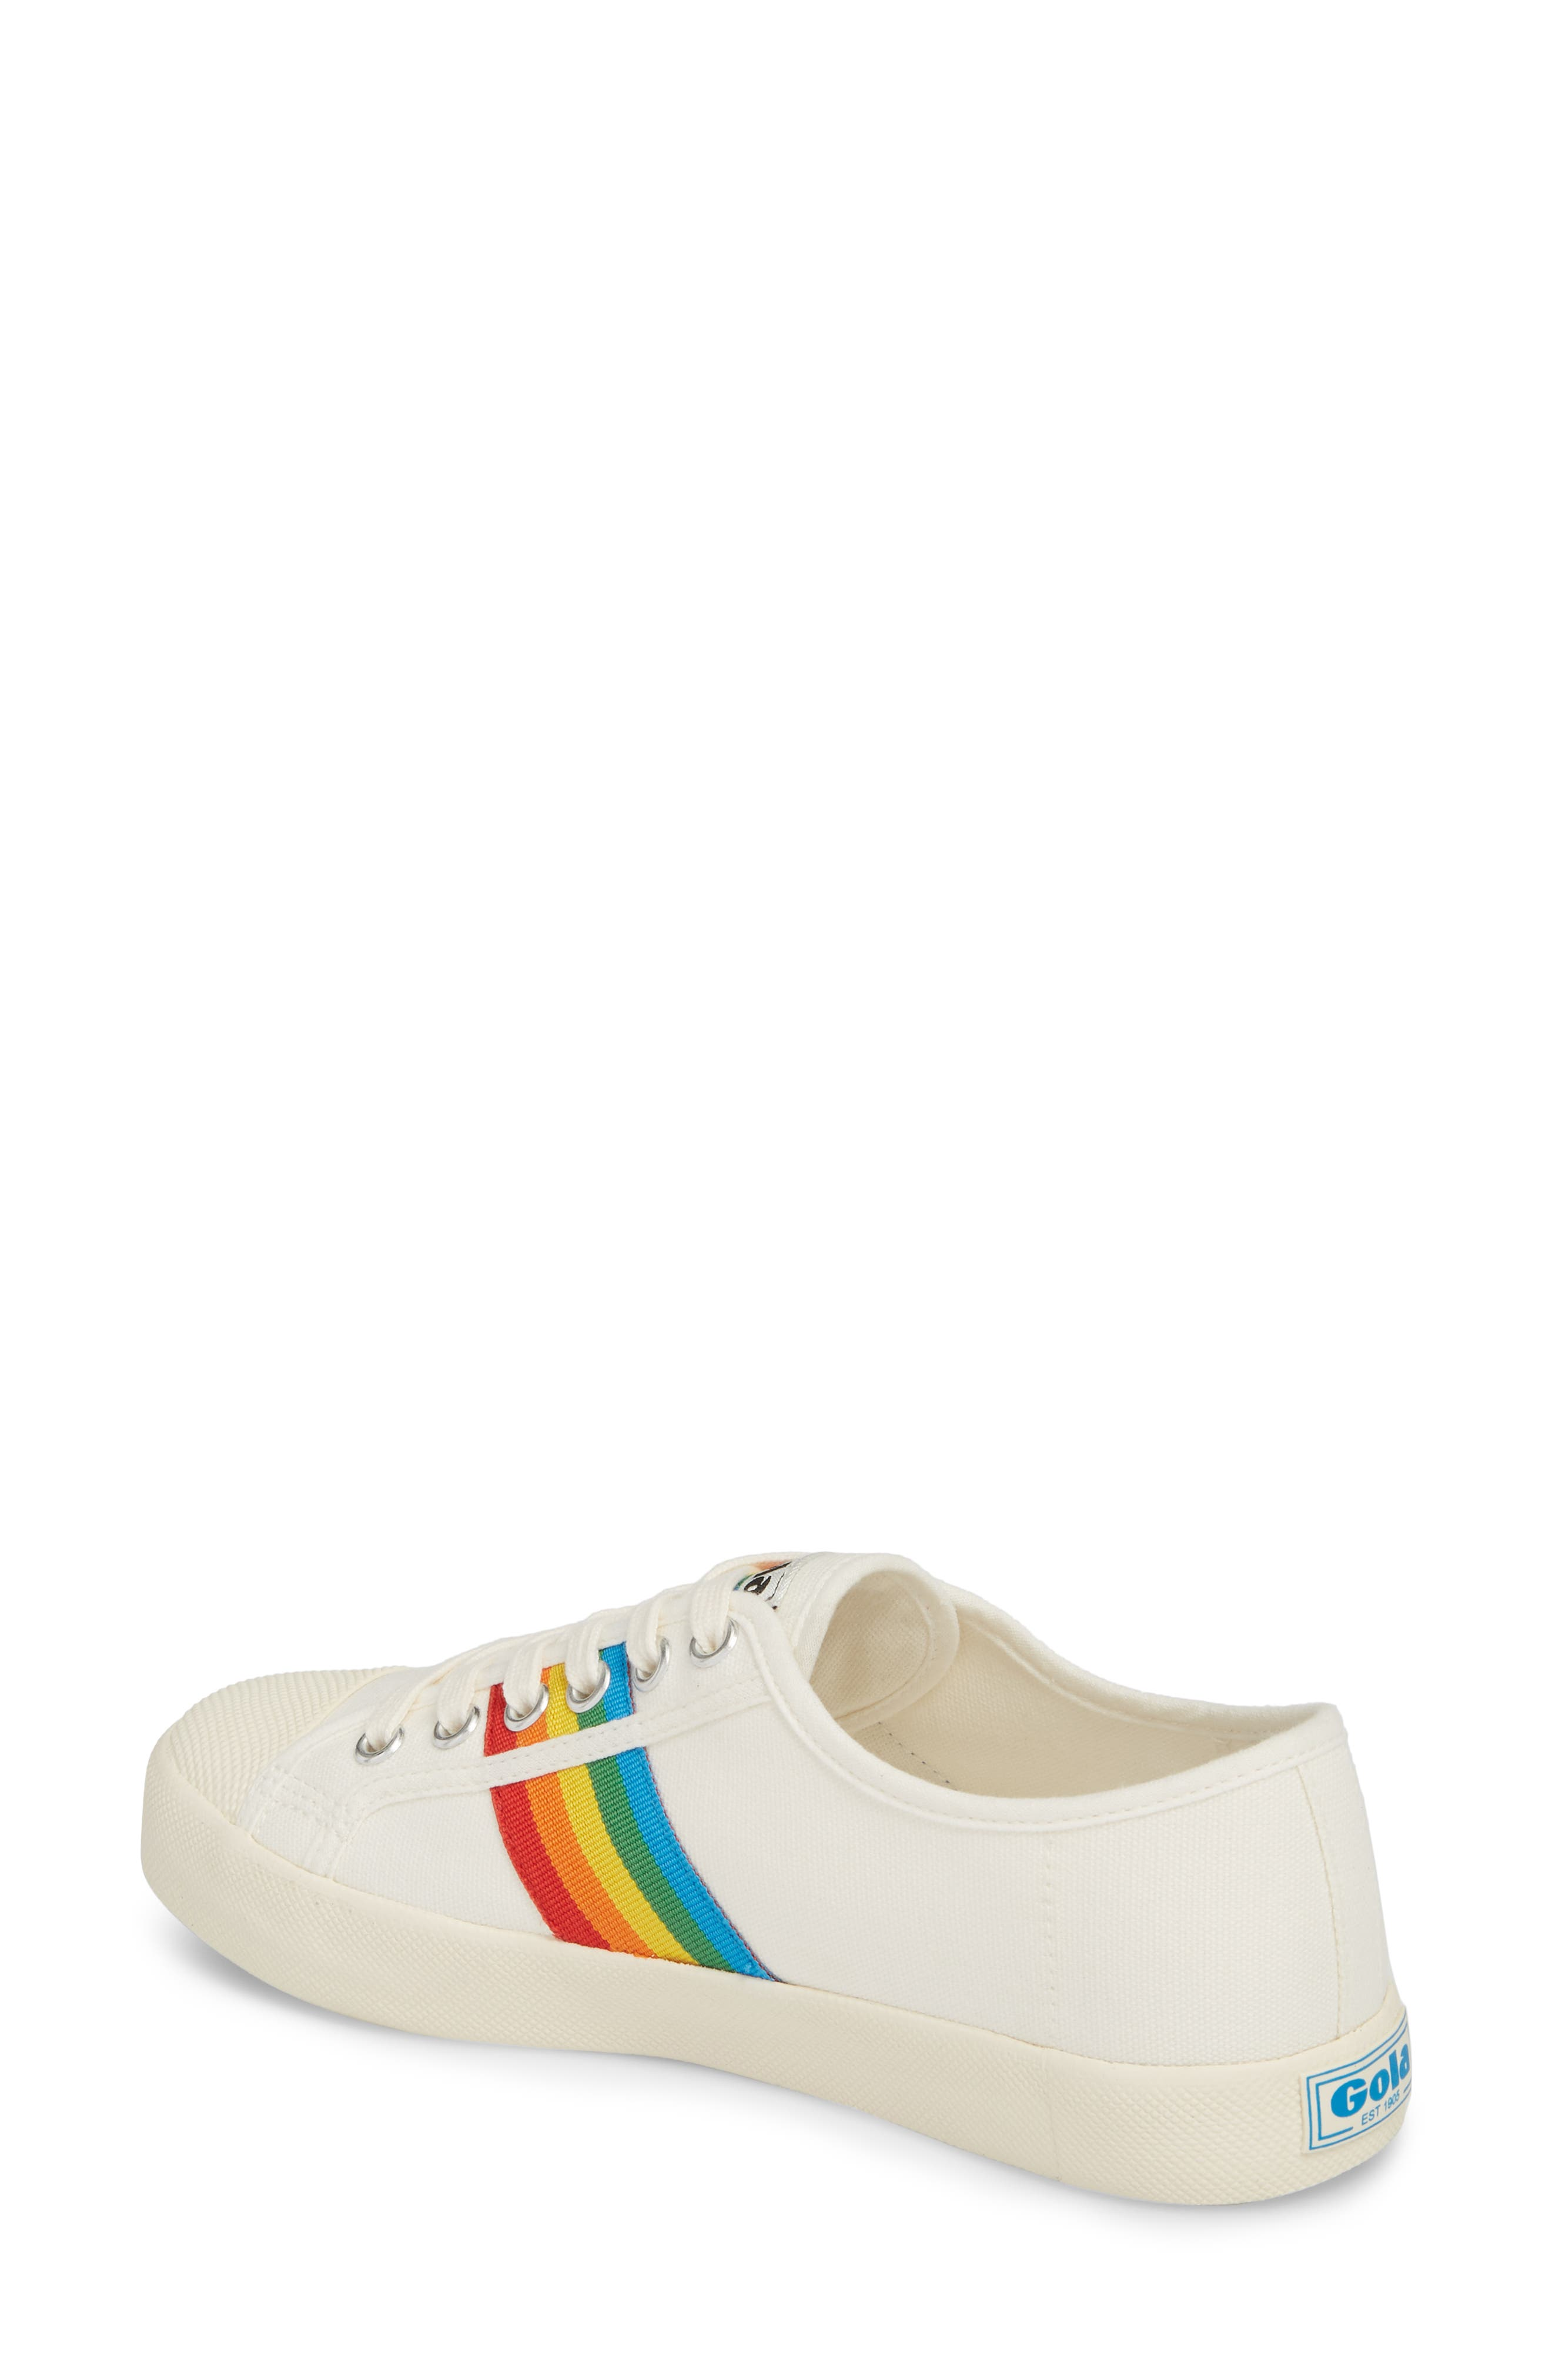 Coaster Rainbow Striped Sneaker,                             Alternate thumbnail 2, color,                             OFF WHITE/ MULTI CANVAS